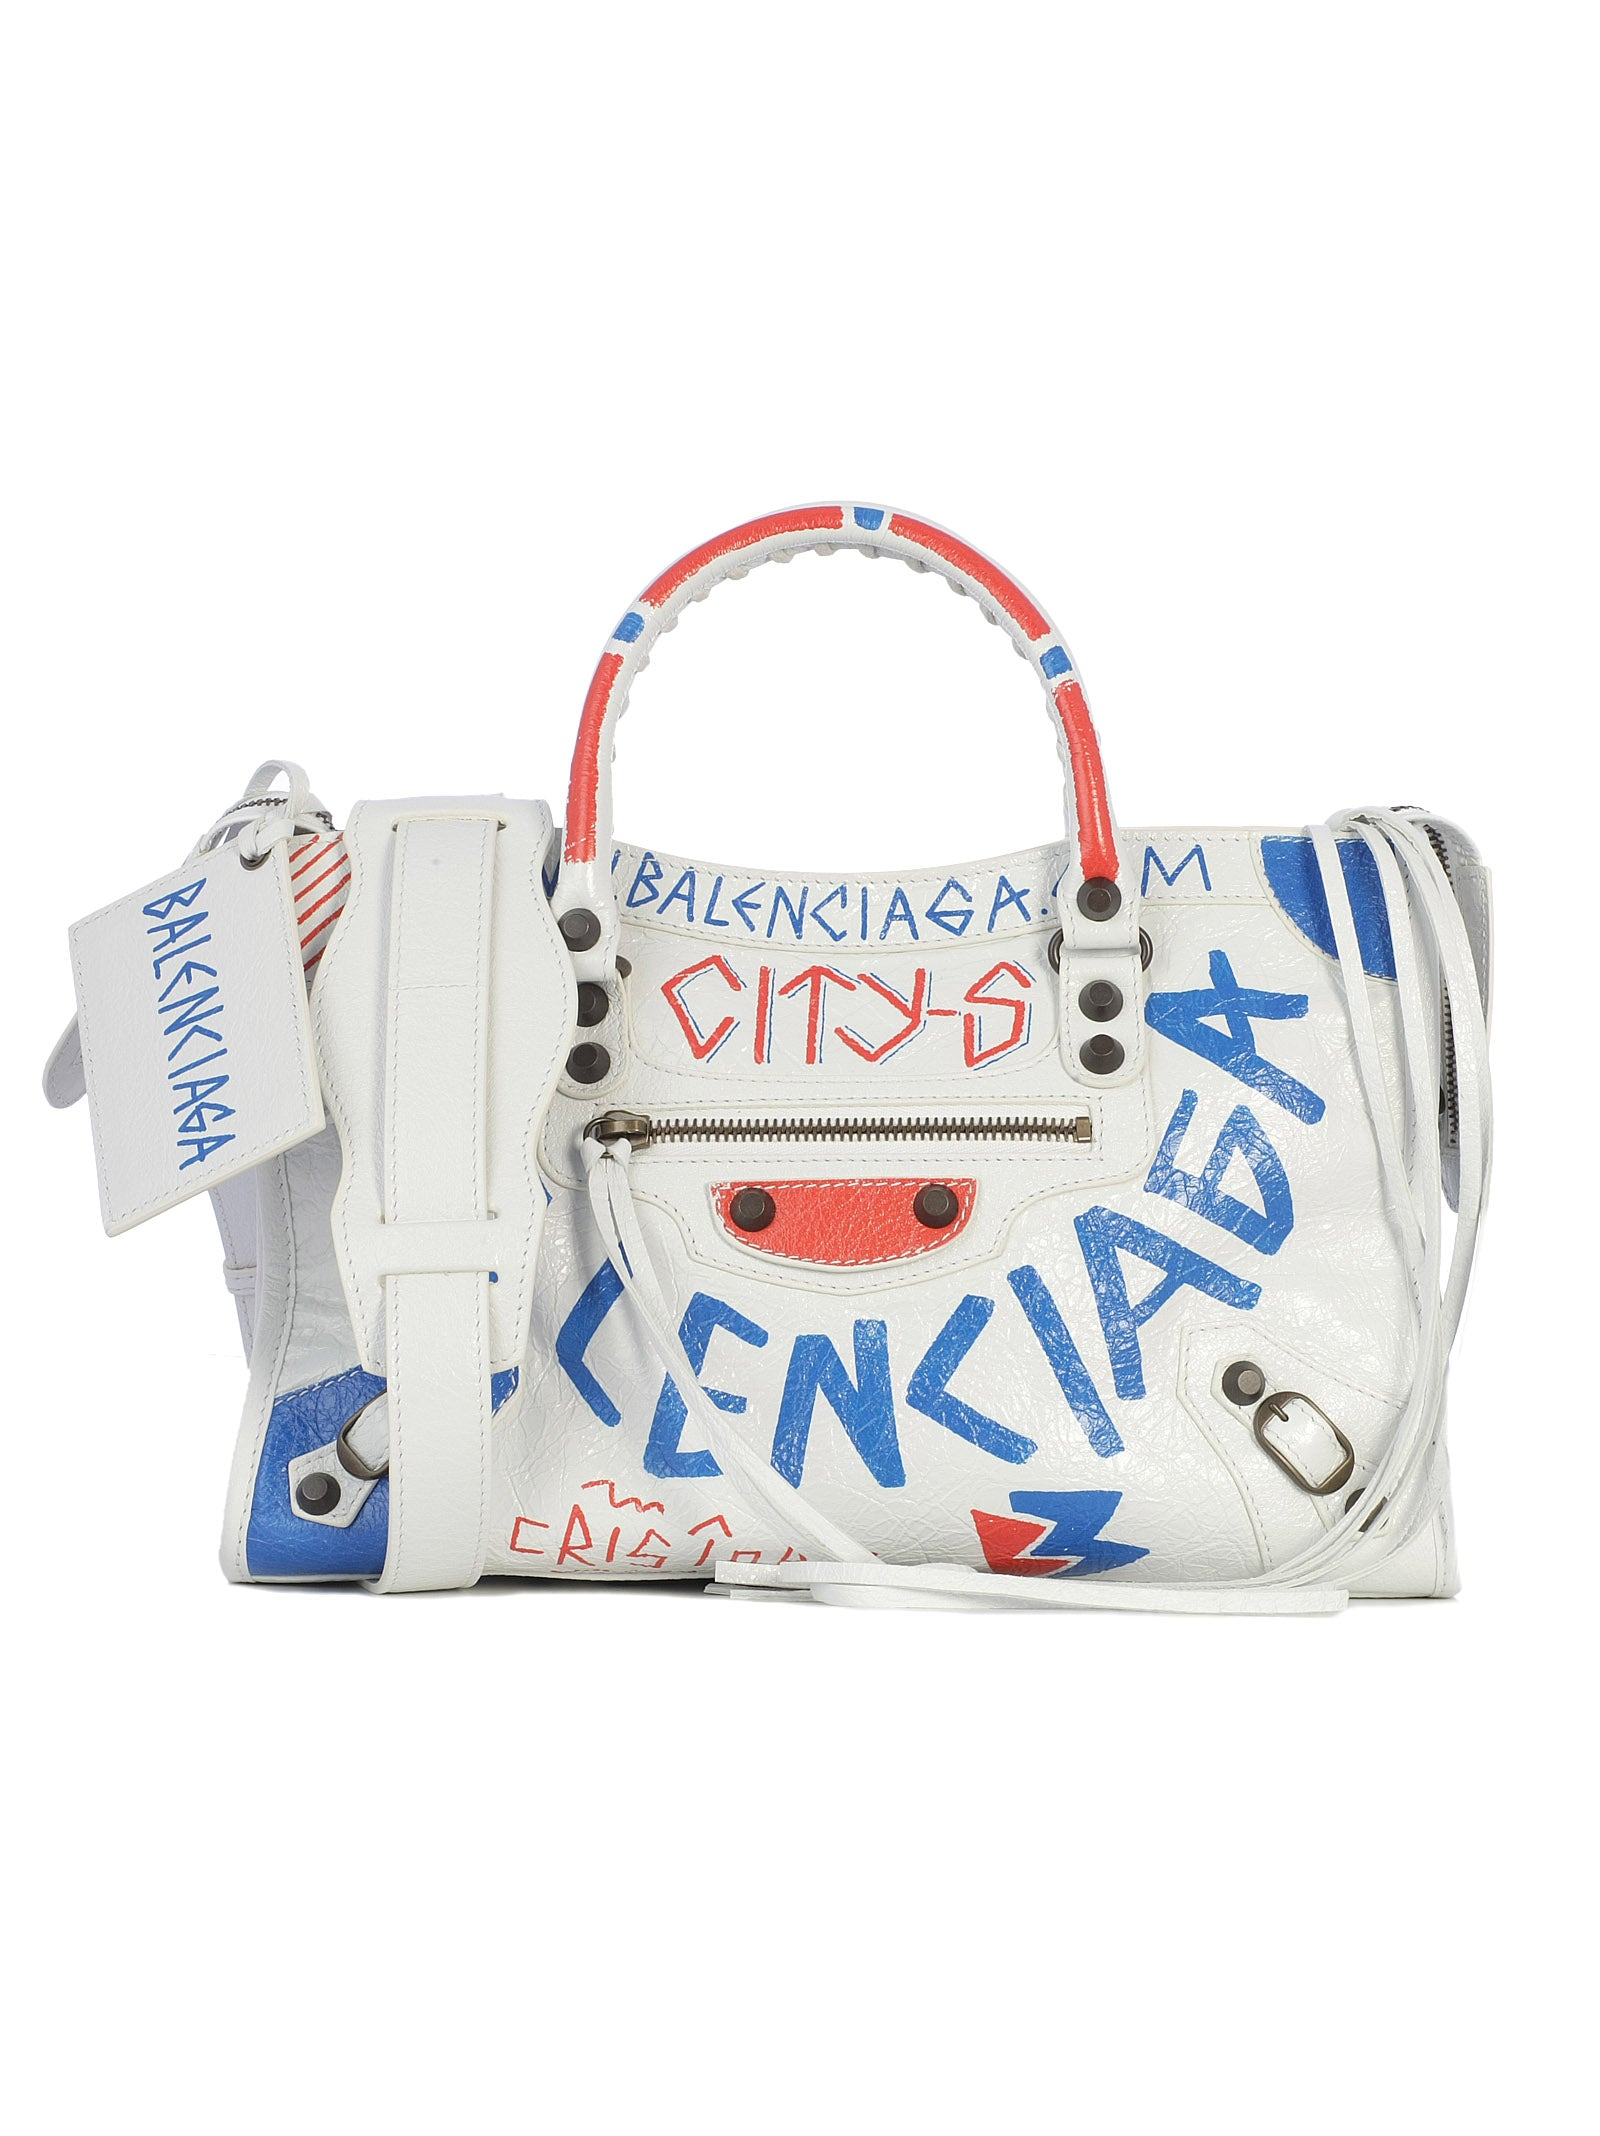 BALENCIAGA CLASSIC CITY S TOTE BAG